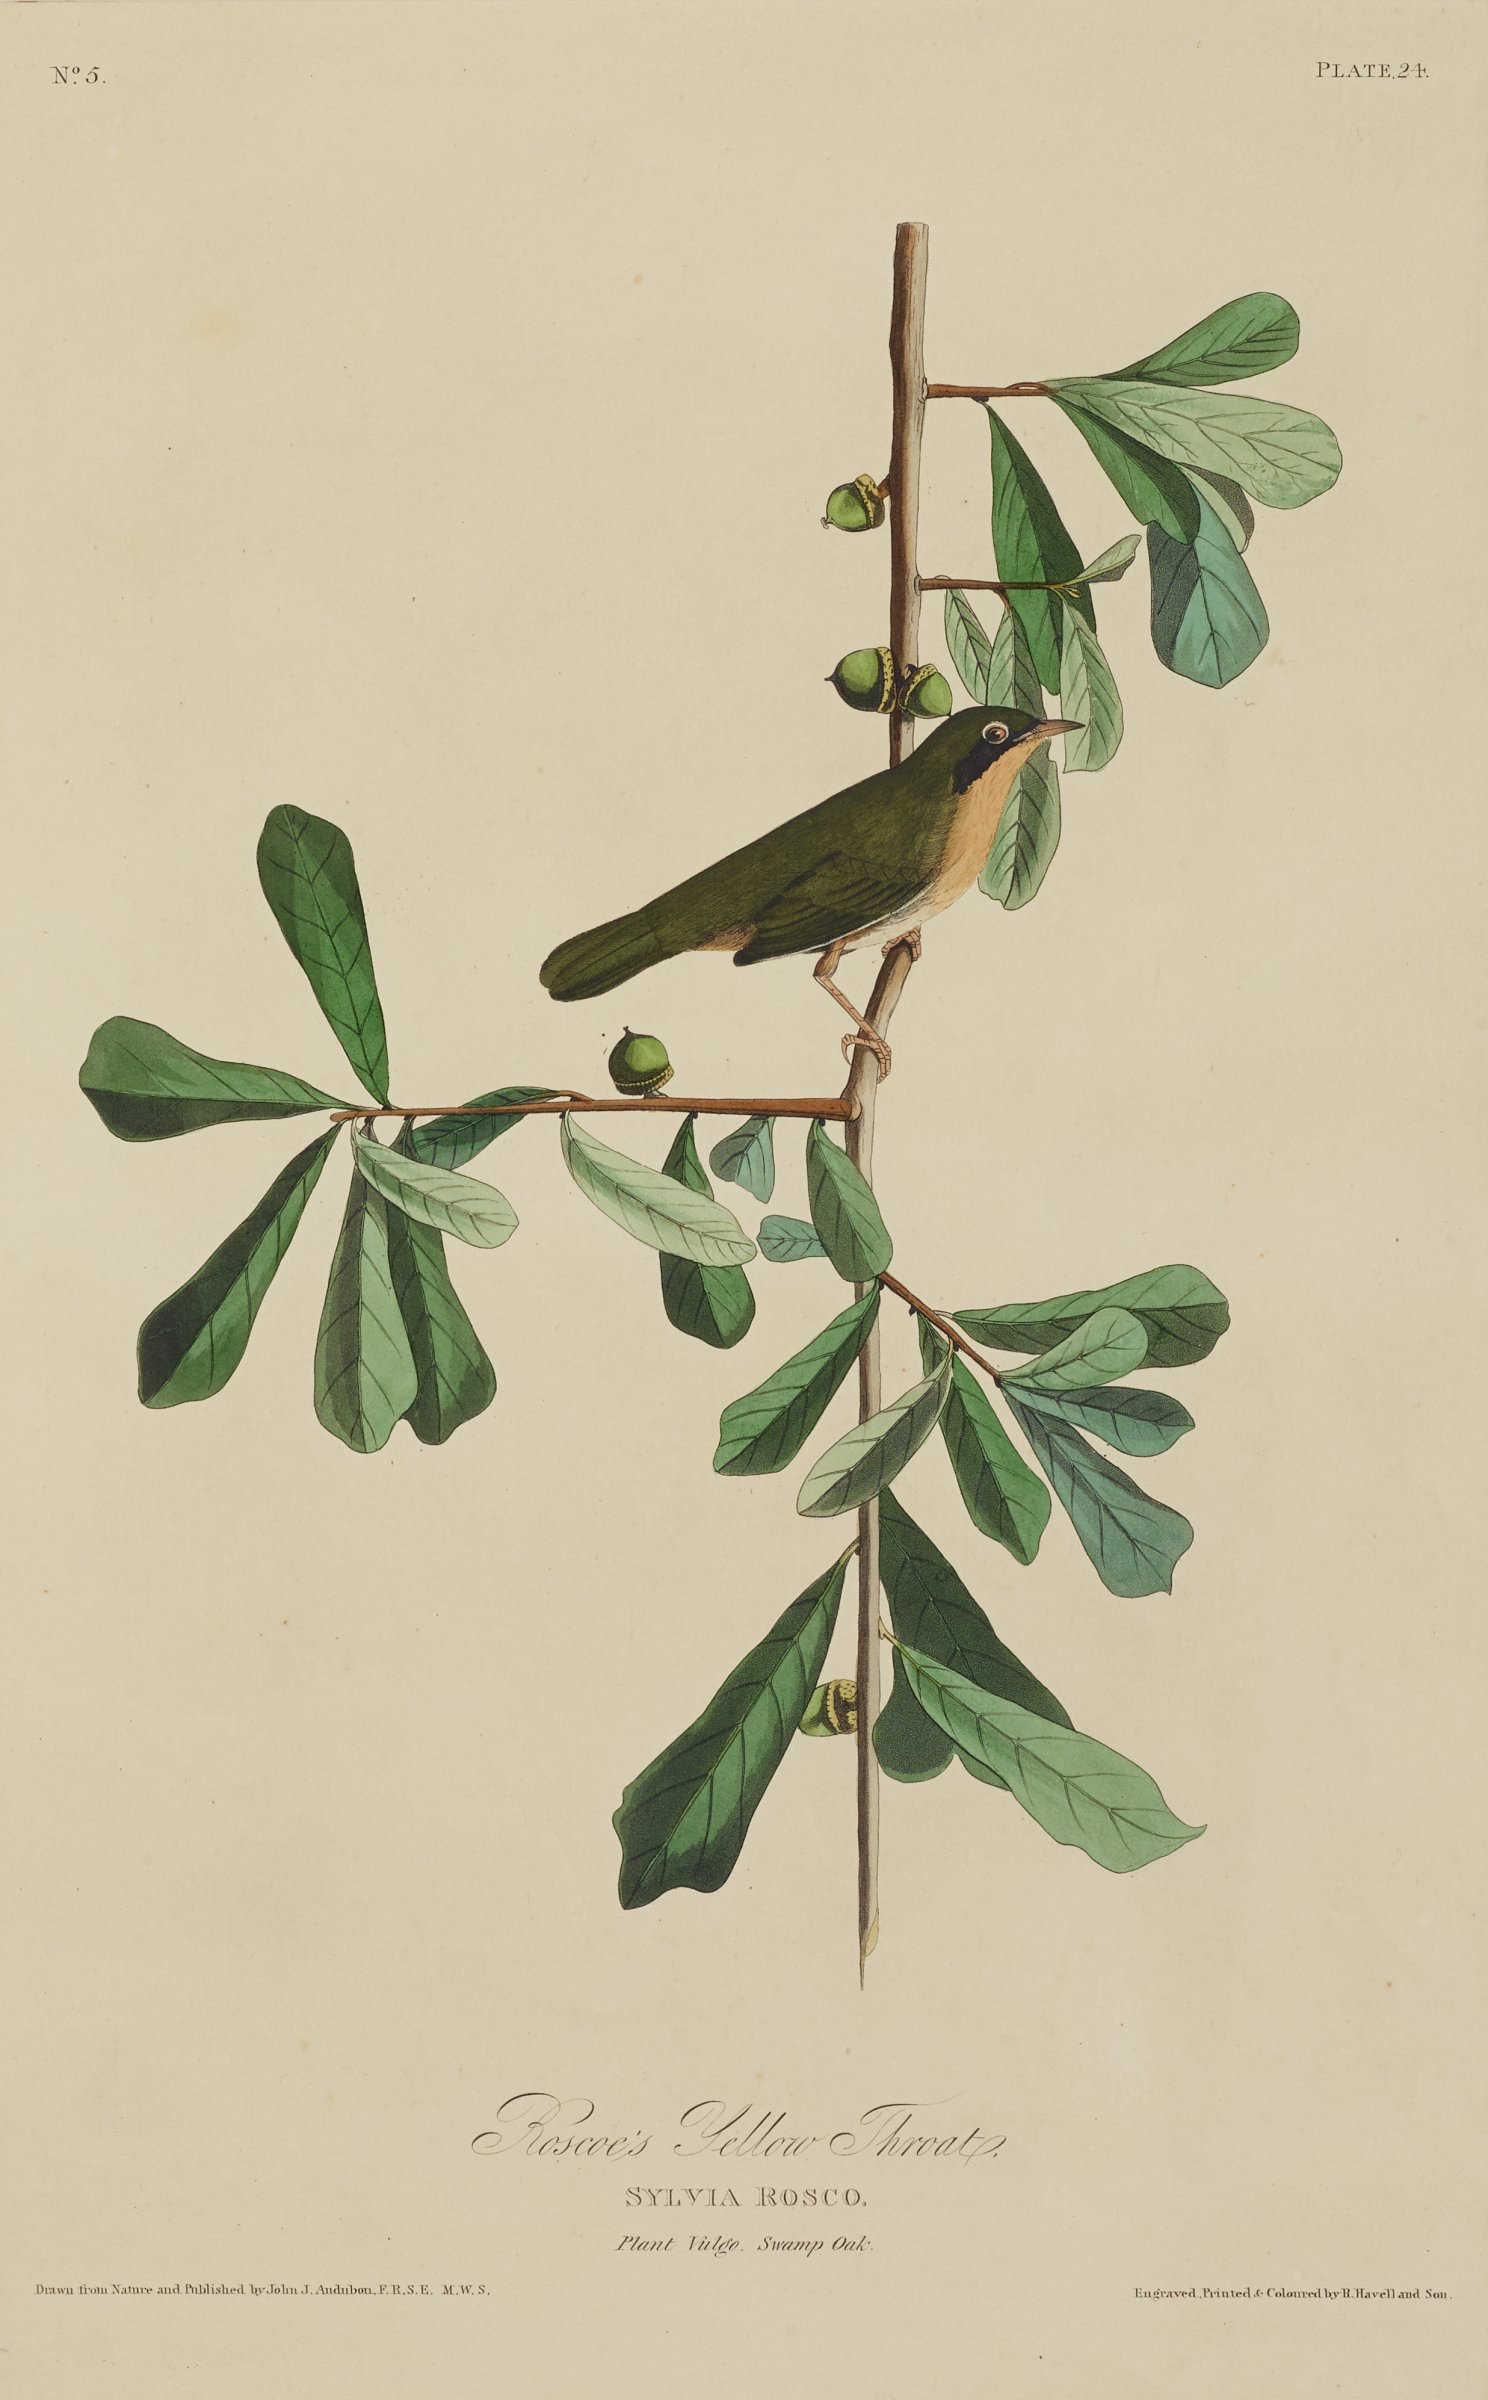 A bird characterized by black feathers on its back, yellow feathers on its chest, and white feathers on its stomach stands on a branch containing oblong leaves and green acorns.